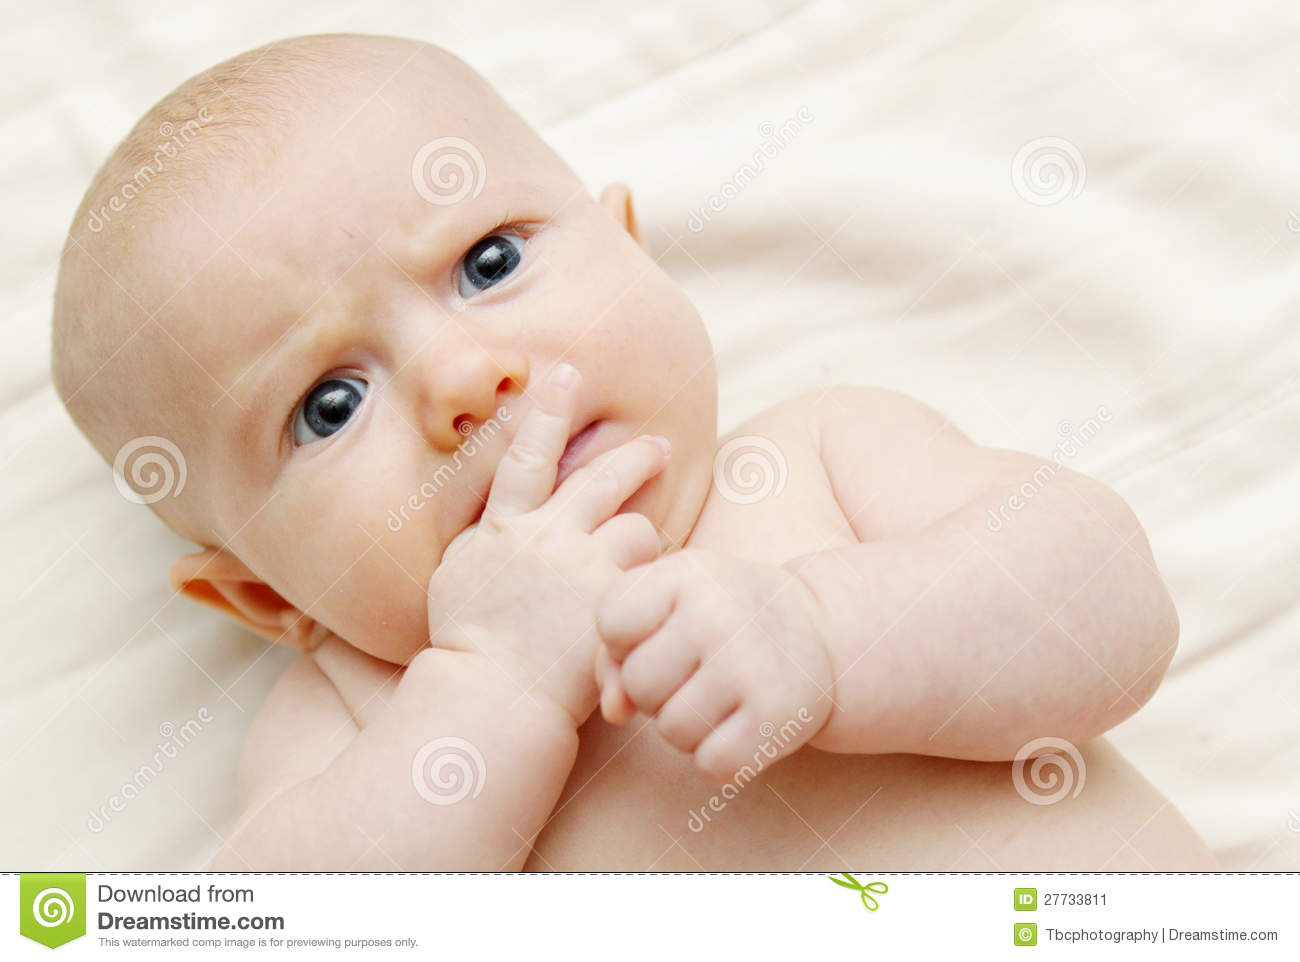 Thinking Baby Baby thinkingThe More I Think The More Confused I Get